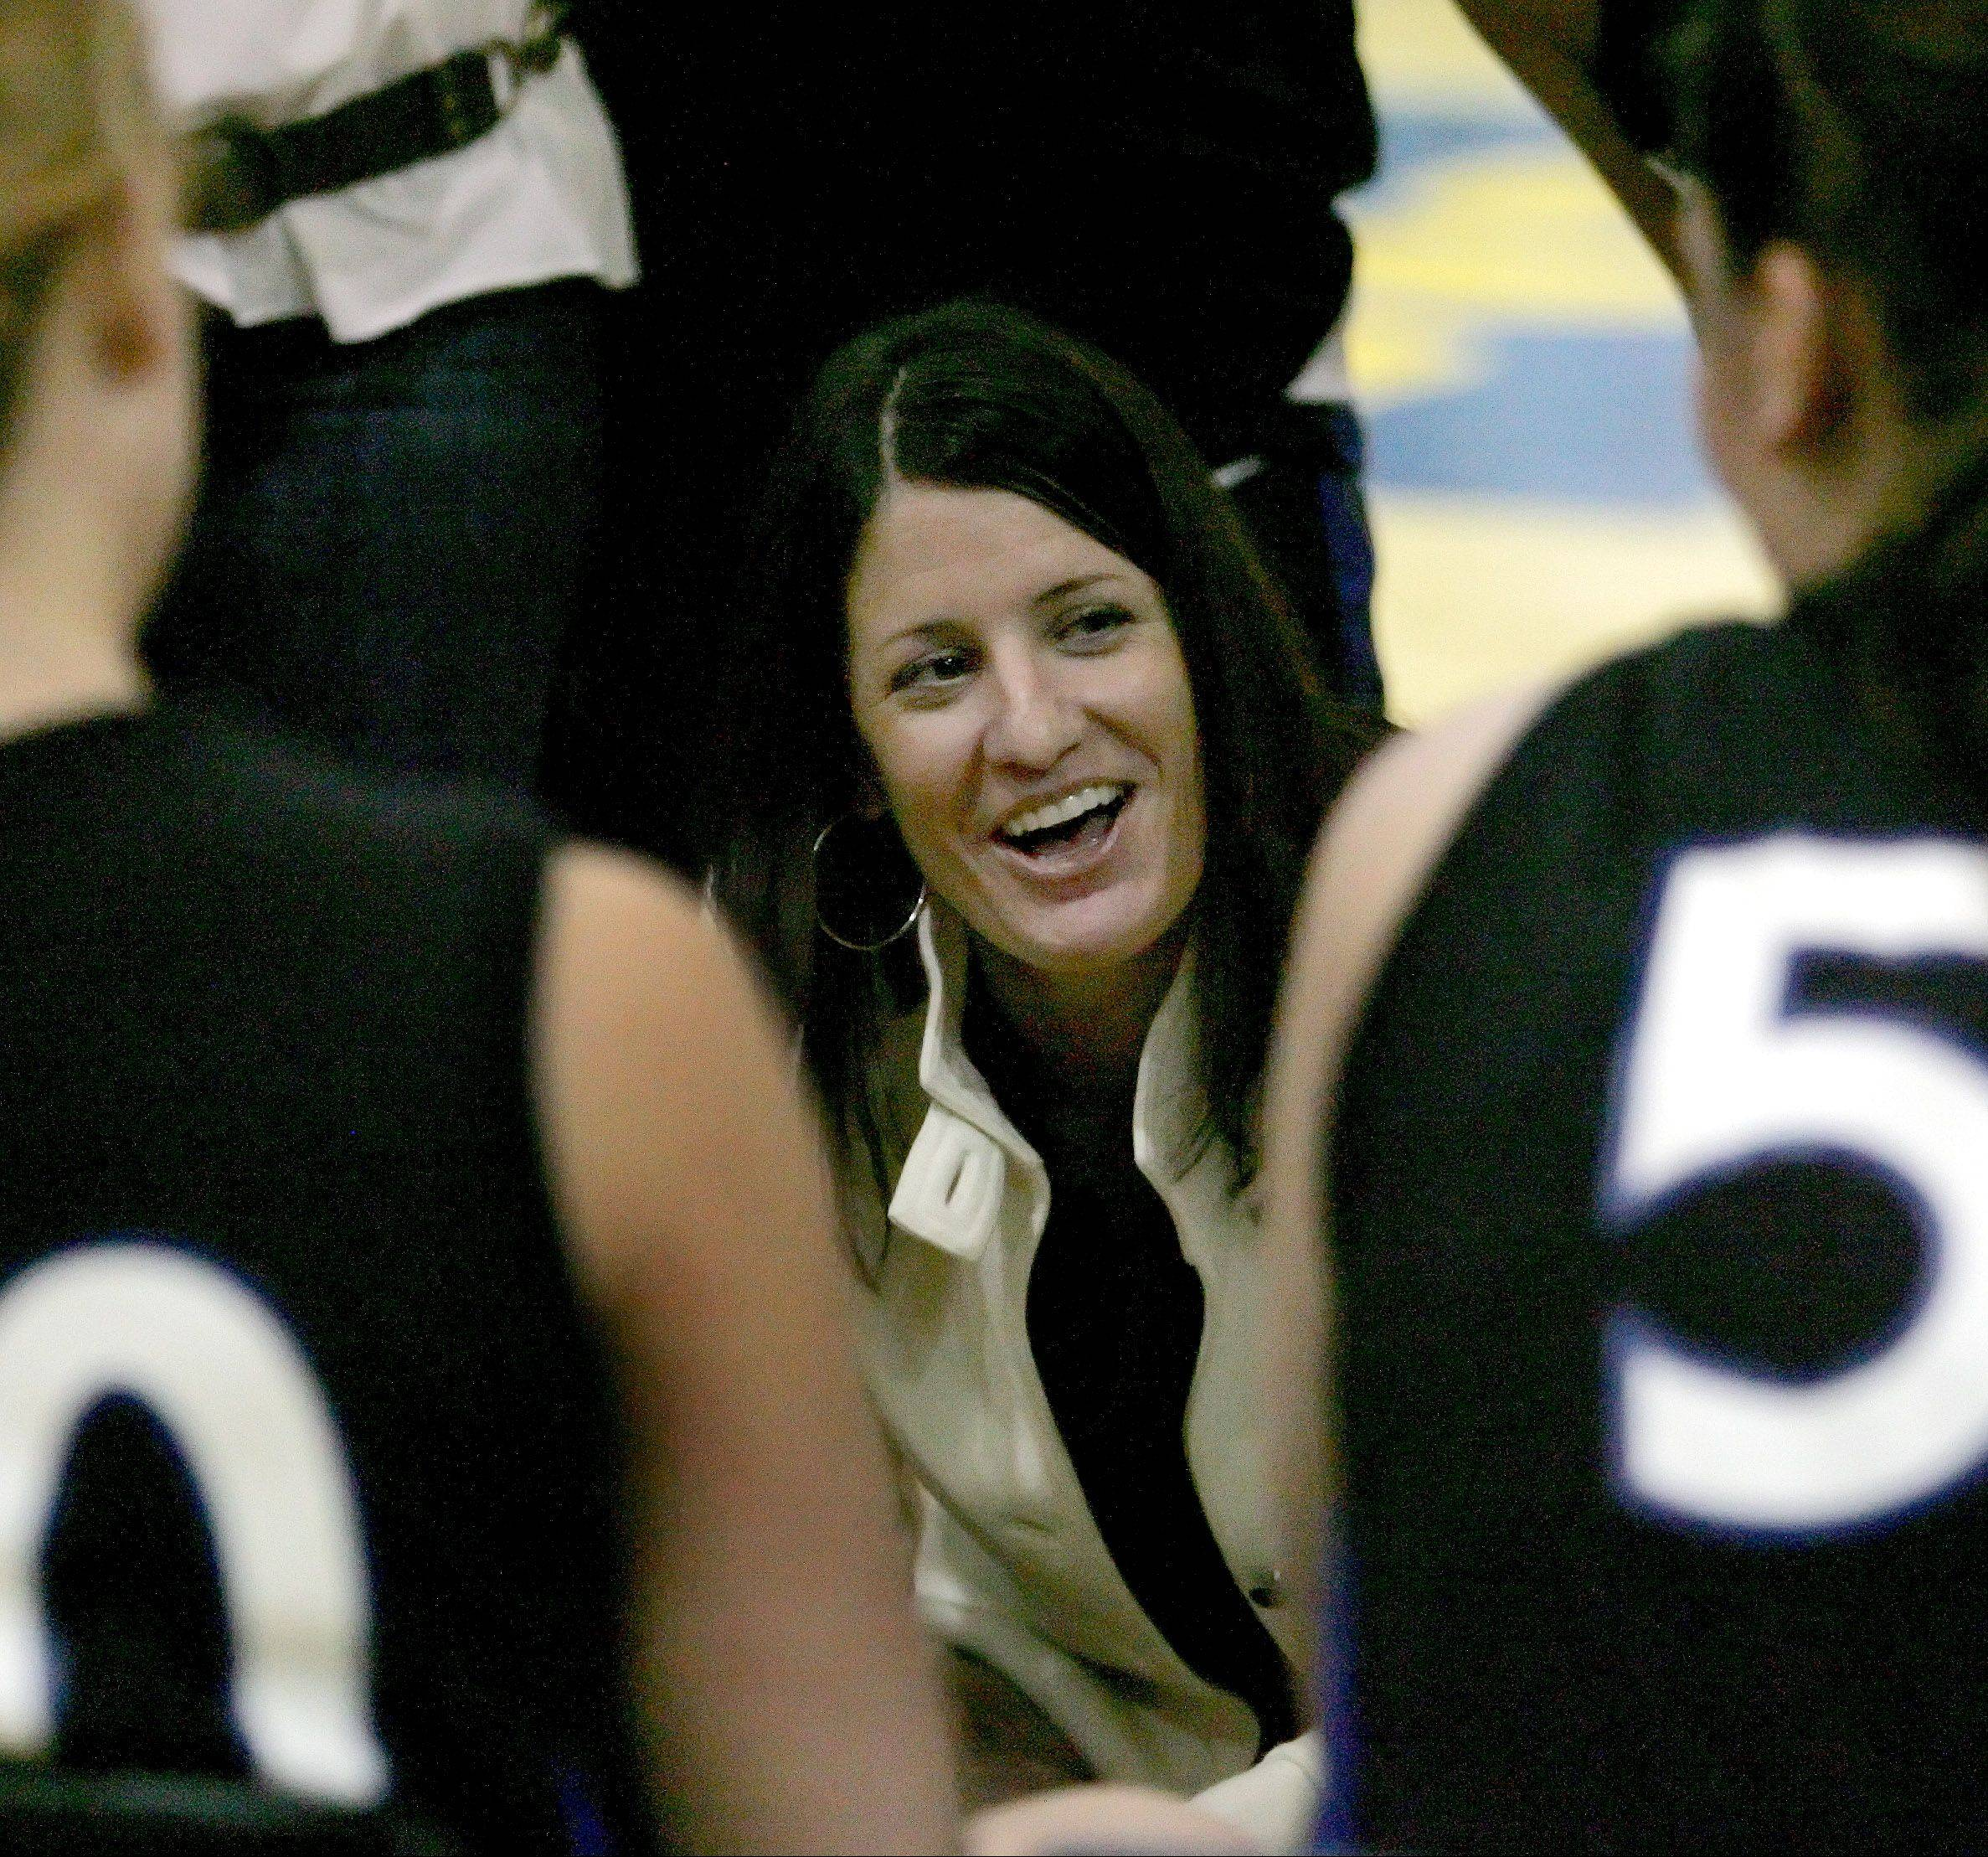 Colleen Backer said stepping down as St. Charles North girls basketball coach was an